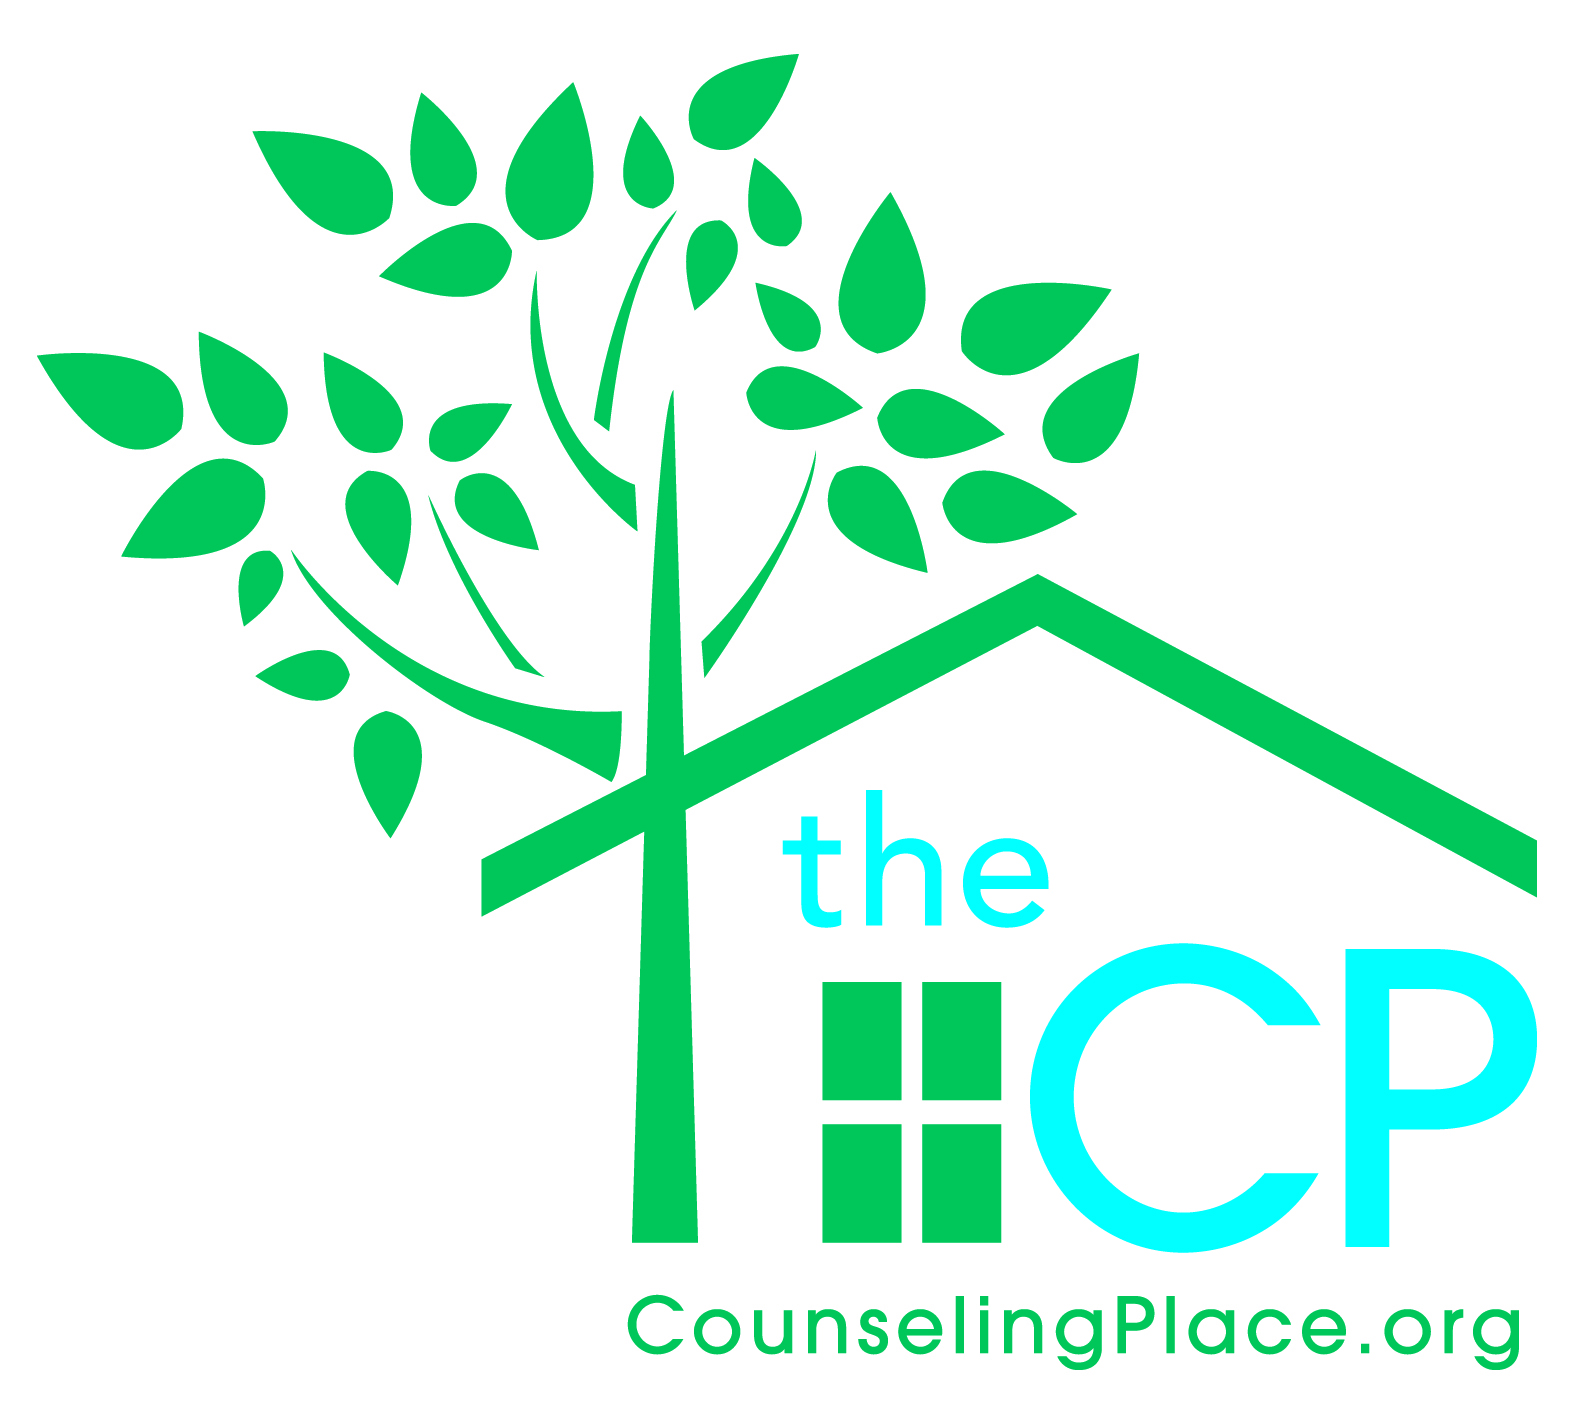 The Counseling Place Logo